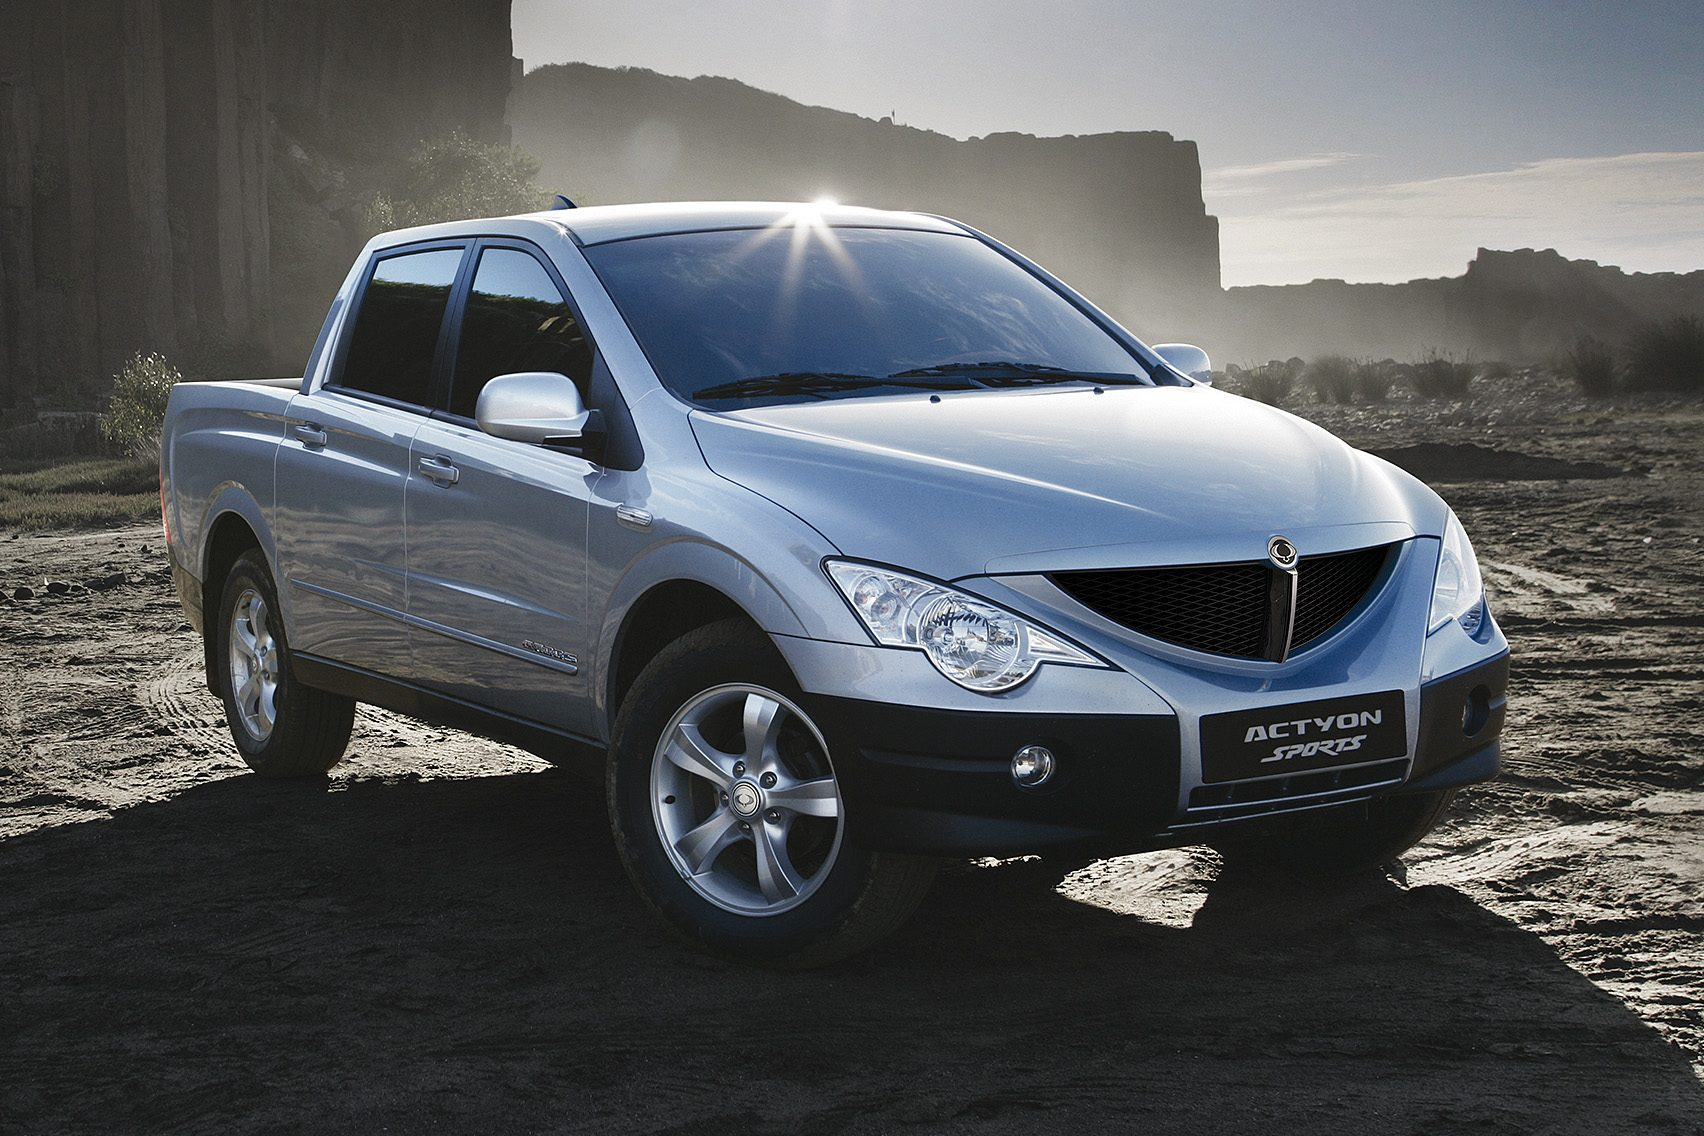 SsangYong Actions Sports